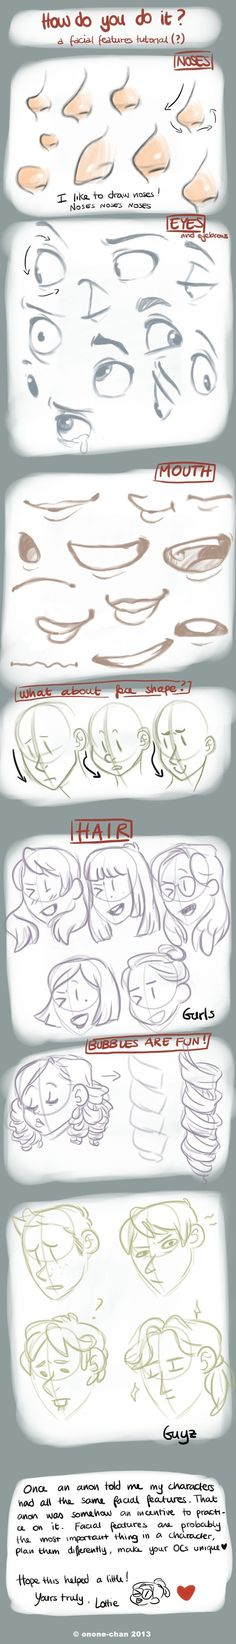 Fantasting Drawing Hairstyles For Characters Ideas. Amazing Drawing Hairstyles For Characters Ideas. Drawing Techniques, Drawing Tips, Drawing Reference, Drawing Stuff, Basic Drawing, Anatomy Reference, Drawing Ideas, Cartoon Drawings, Art Drawings